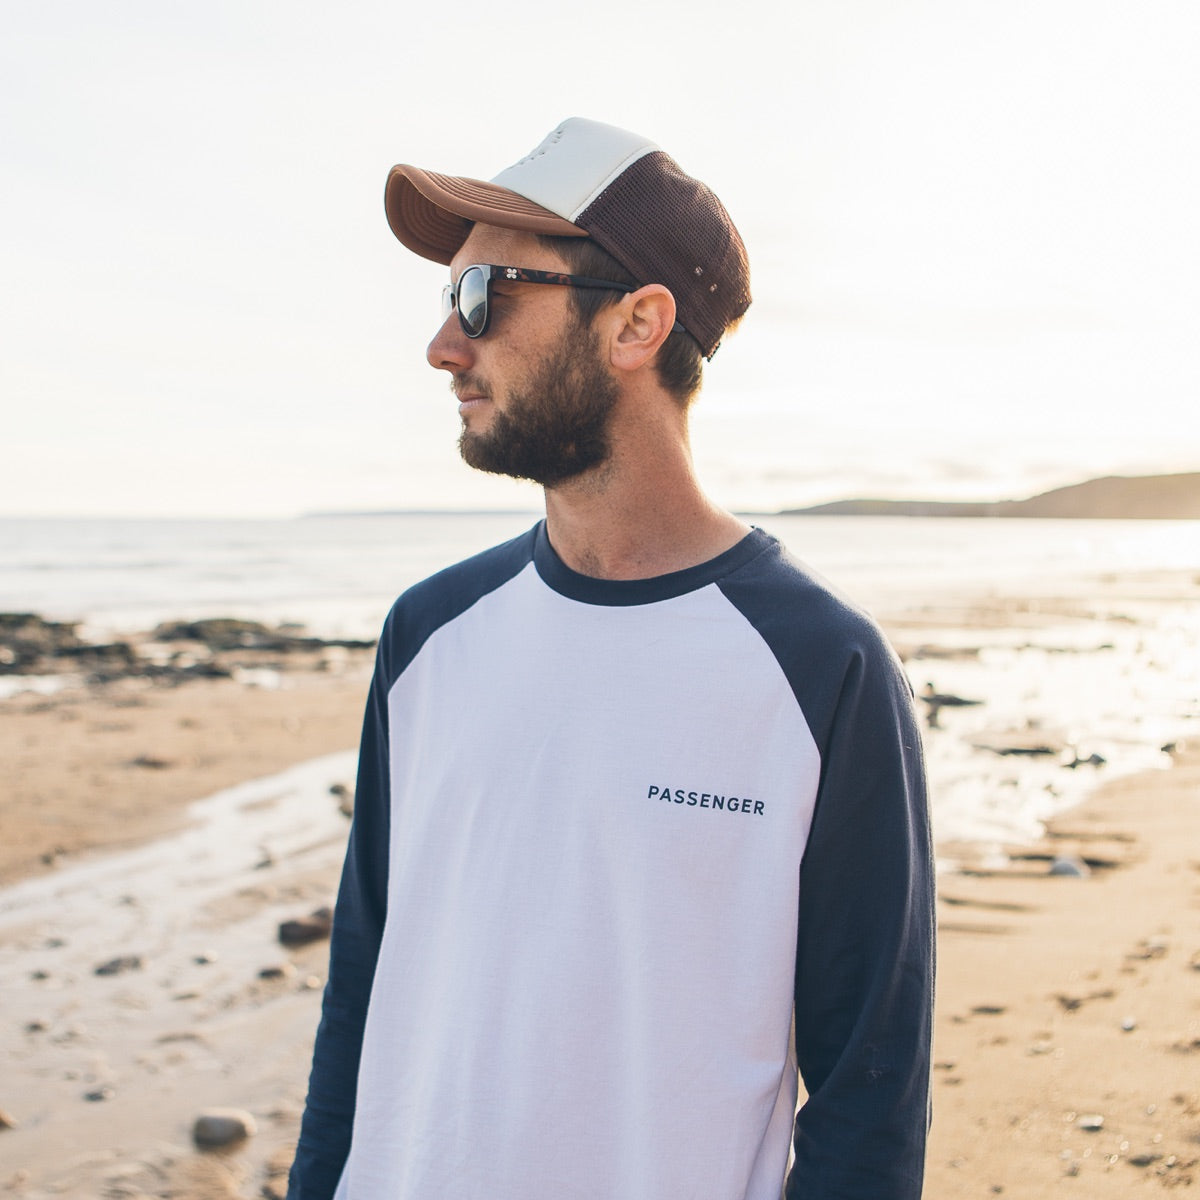 Time Slows L/S T-Shirt - White/Navy image 2